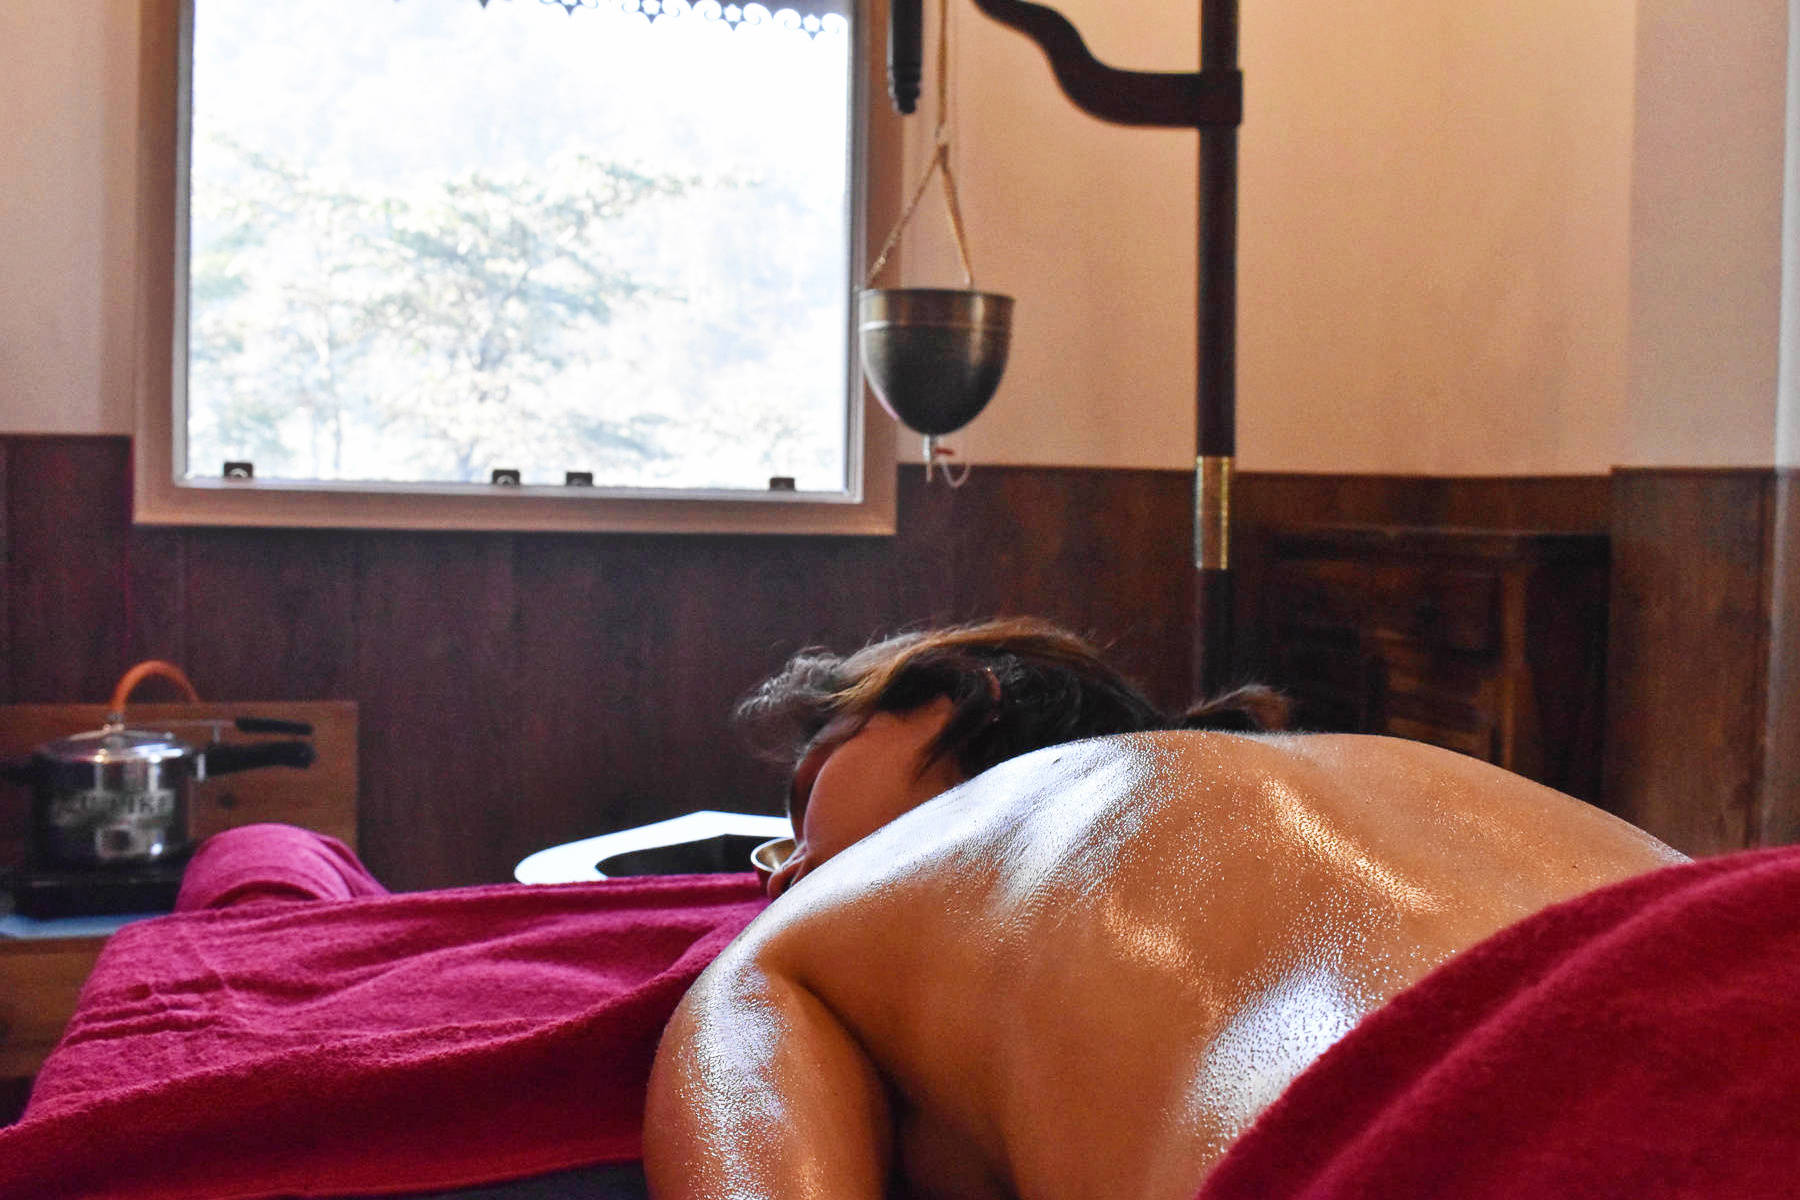 Veda5 Luxury Ayurveda Panchakarma Treatment Package - Wellness Retreat for Healing and Cure in Himalayas - Rishikesh India International